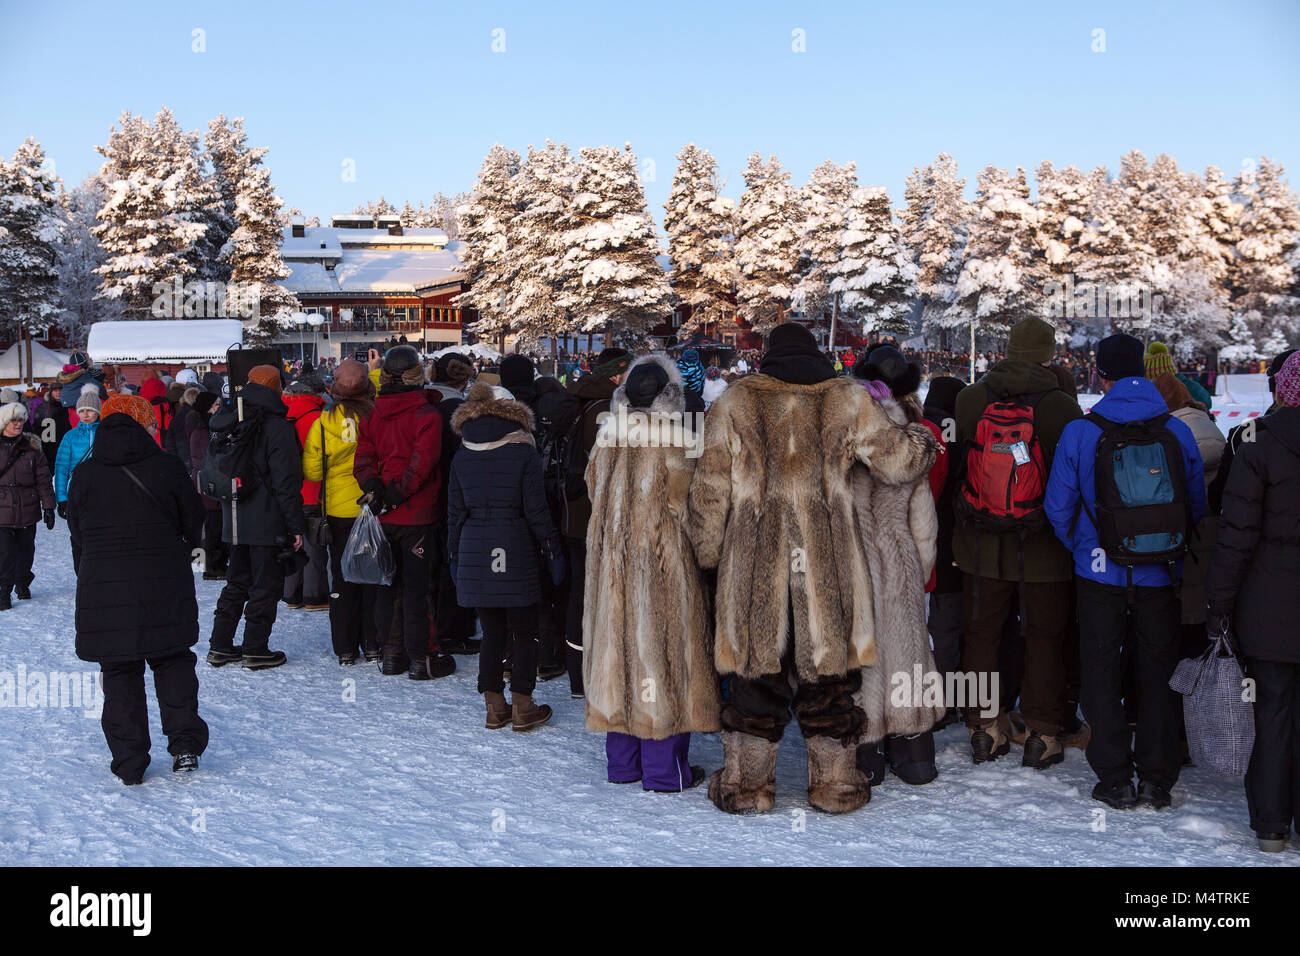 JOKKMOKK, SWEDEN ON FEBRUARY 03, 2018. View of well-dressed spectators from behind. Forest and buildings. Editorial - Stock Image